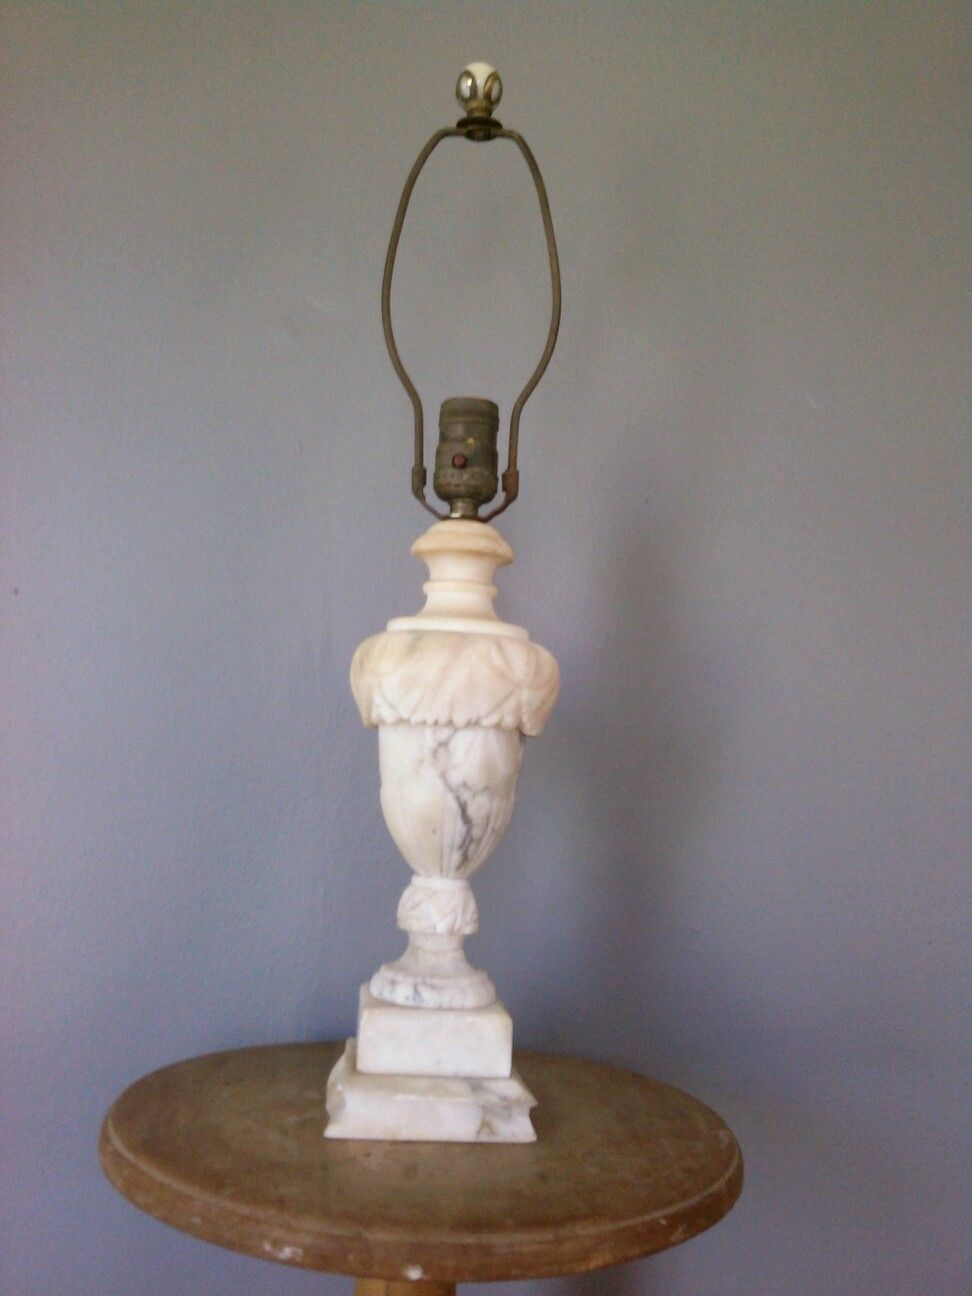 Lamp Parts and Repair | Lamp Doctor: Vintage Alabaster ...